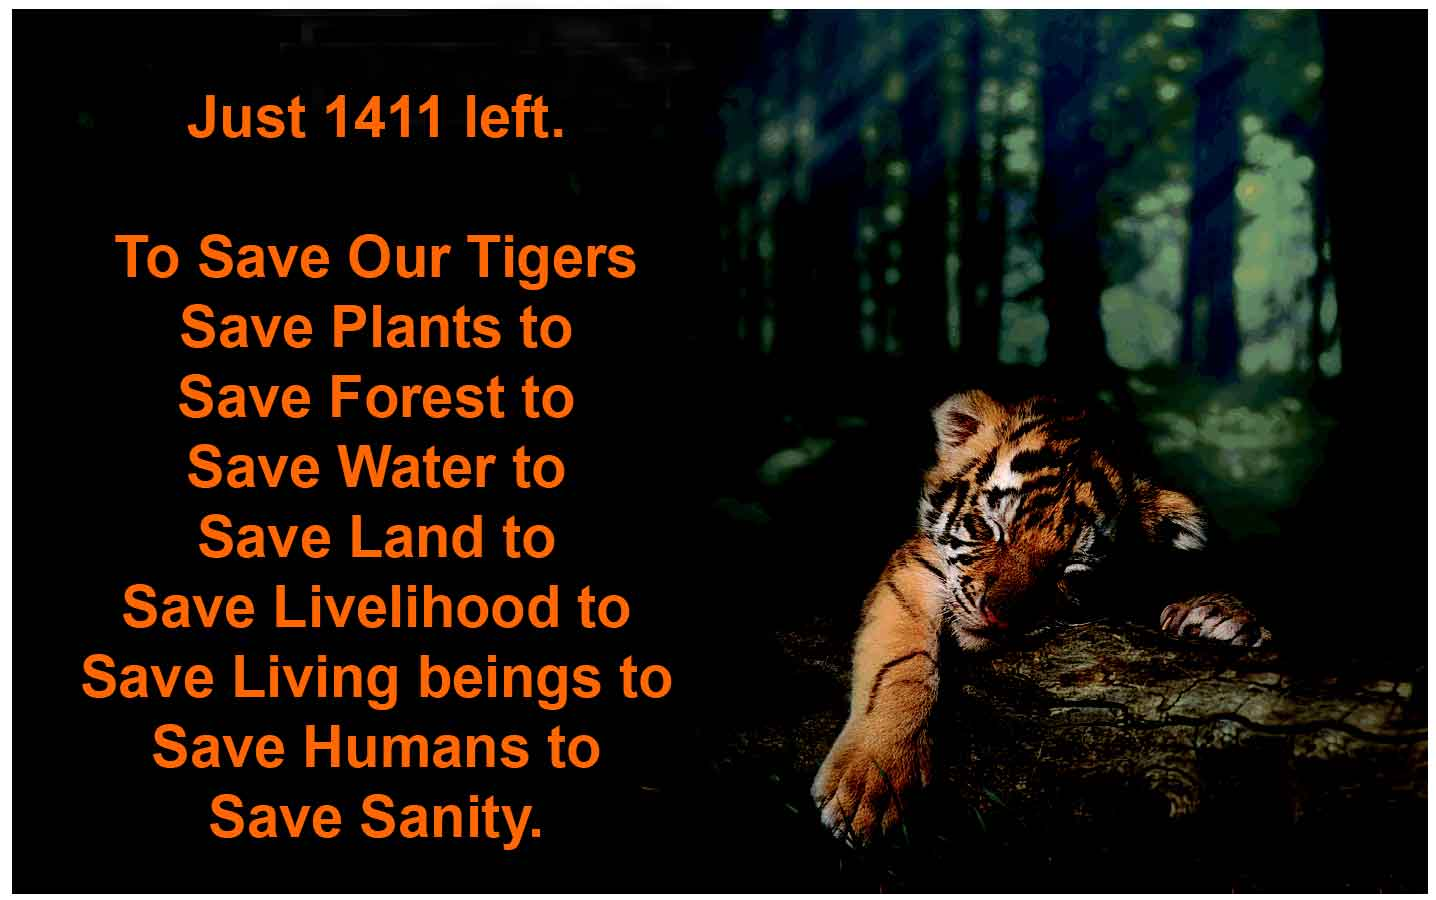 essay on save the wildlife Writing sample of essay on a given topic conserving natural resources conserving natural resources we conserve natural resources because of their natural beauty and cultural importance however, in present time's human activities has increasingly destroyed the environment.